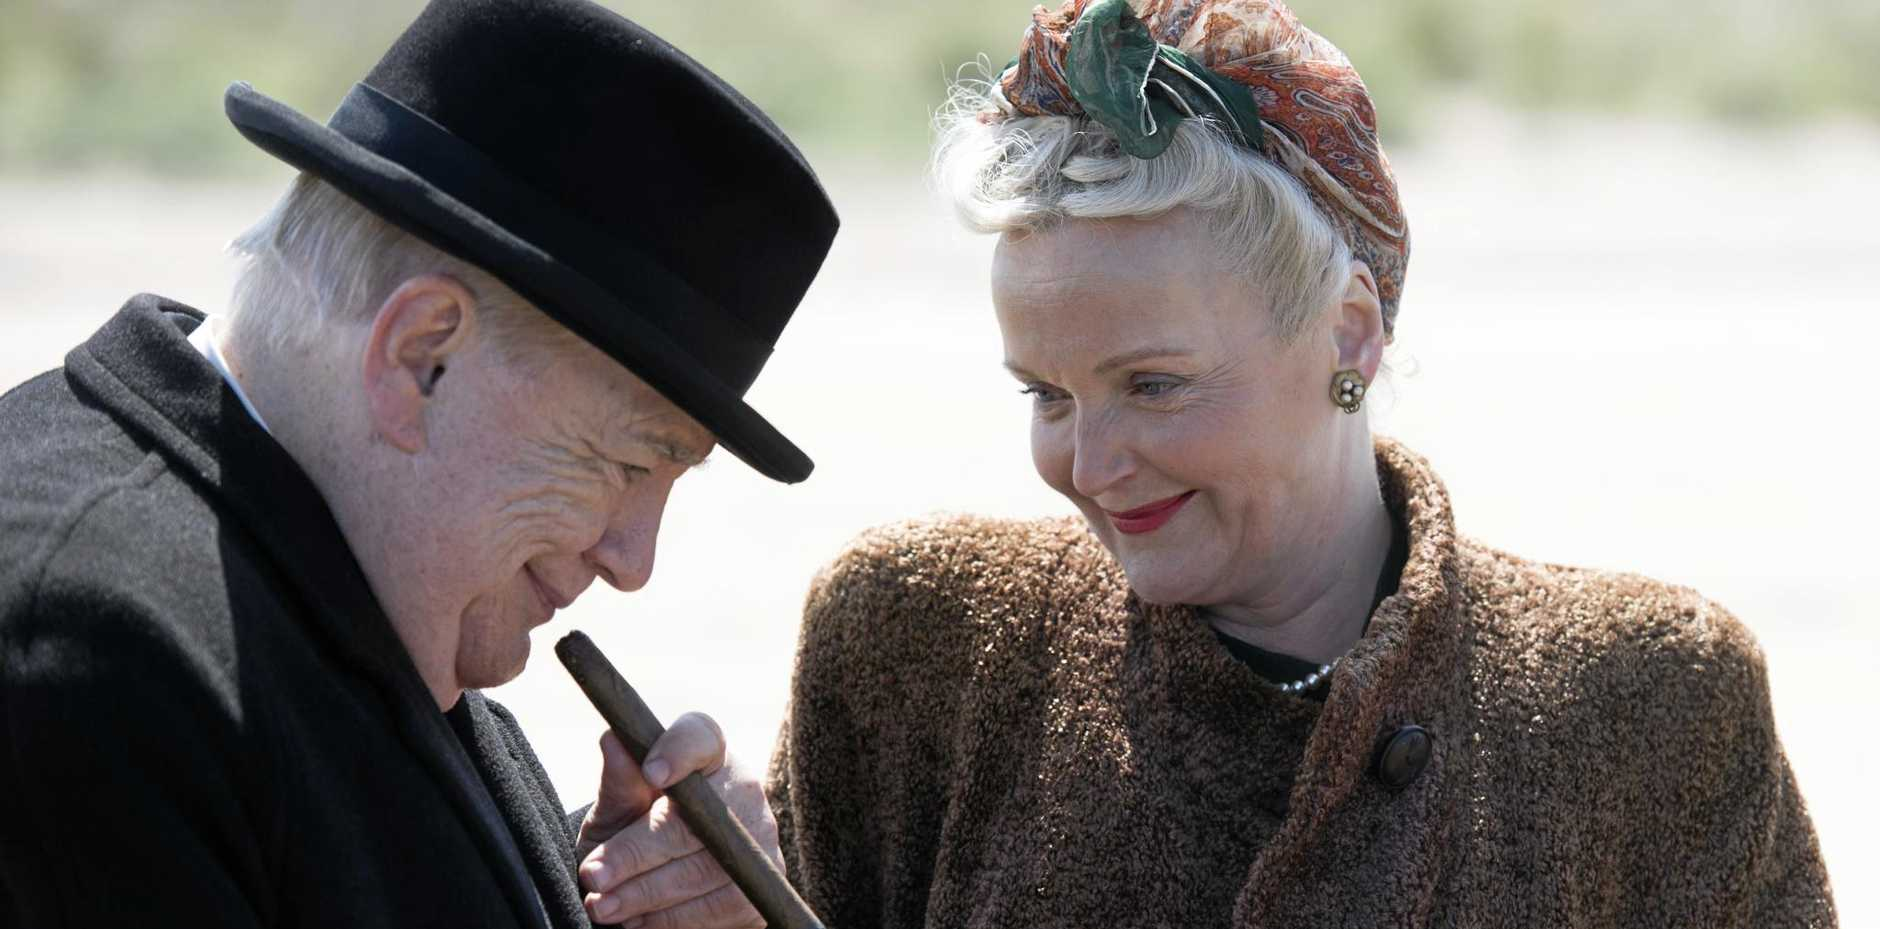 Brian Cox and Miranda Richardson in a scene from the movie Churchill.